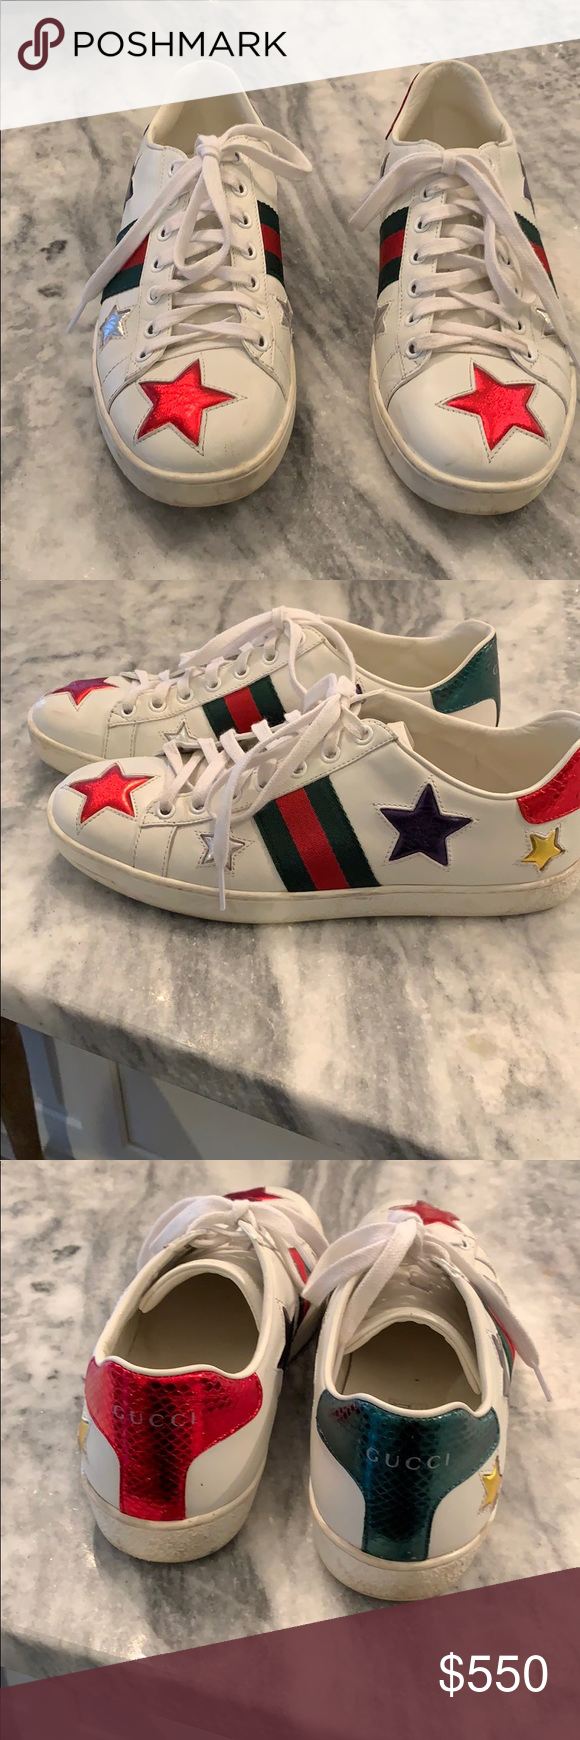 70833c795 Gucci ace sneakers Used 3 times very good condition Gucci Shoes Sneakers